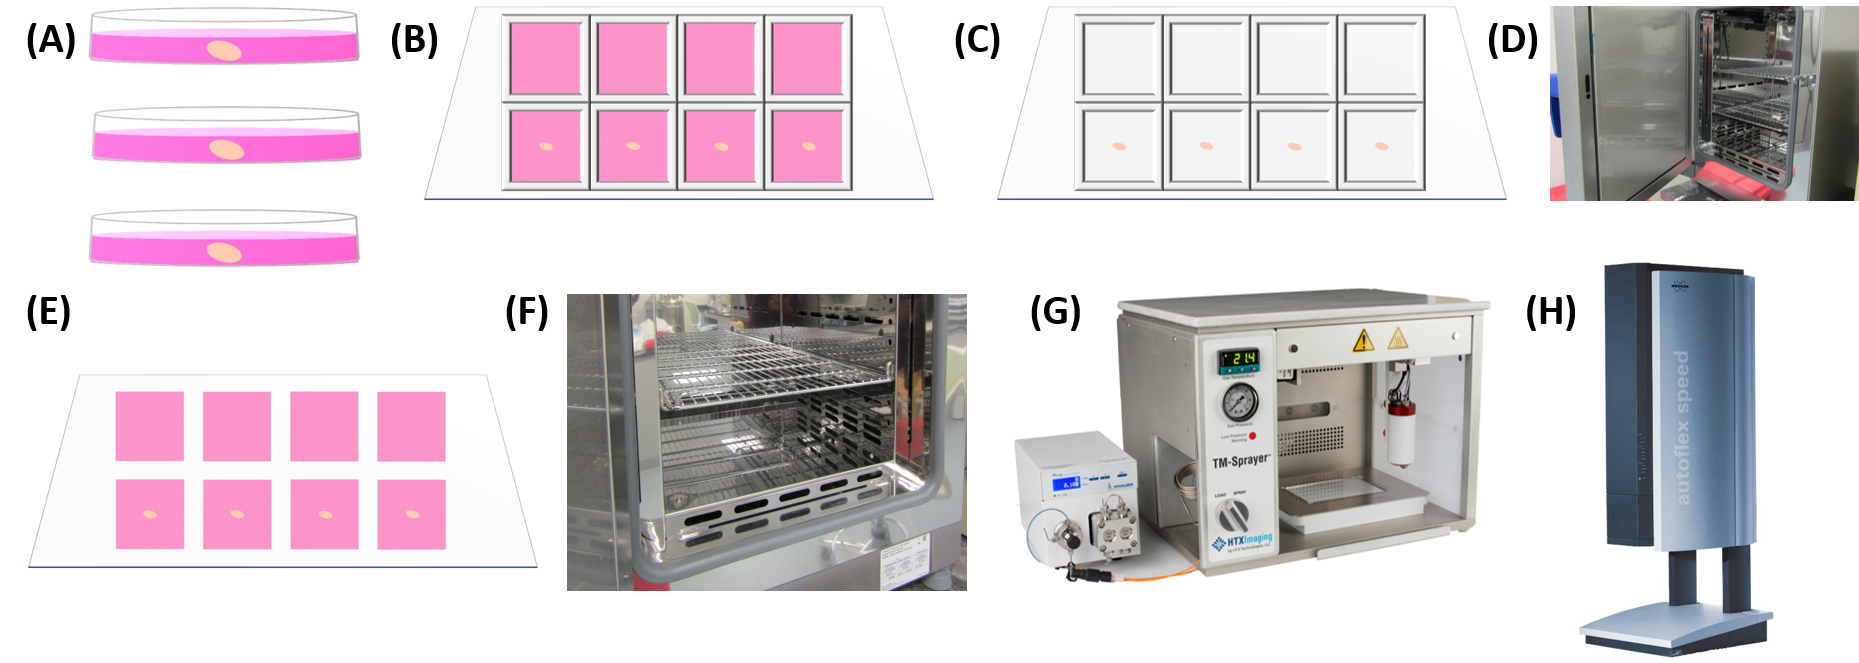 Figure 1.  Overview of work-flow for MALDI-MSI. (A) Ovaries from 16-18 day old female mice were extracted and maintained in warm media. (B) Ovaries are separated from bursa and halved immediately prior to plating. Explants are placed in the center of half of the wells of the 8-well chamber mounted to an ITO-coated glass slide. (C) 300 μL of various cell cultures prepared in 1% agarose are plated in each well. Each cell type was plated with an ovarian explant and as a pure cell culture. (D) The entire slide was covered with a lid and incubated for 4 days at 5% CO2 and 37°C. (E) The 8-well chamber is removed. The 1% agarose 3D cell cultures maintain their shape, ensuring that the cultures do not come into contact with one another. (F) The slide is dried in a 37°C oven for 4 hours and is rotated 90° every hour, resulting in flat and secure agarose plugs for sampling. (G) Slides were sprayed with matrix using the HTX TM-Sprayer. (H) Slides were imaged using a Bruker Autoflex MALDI-TOF MS.